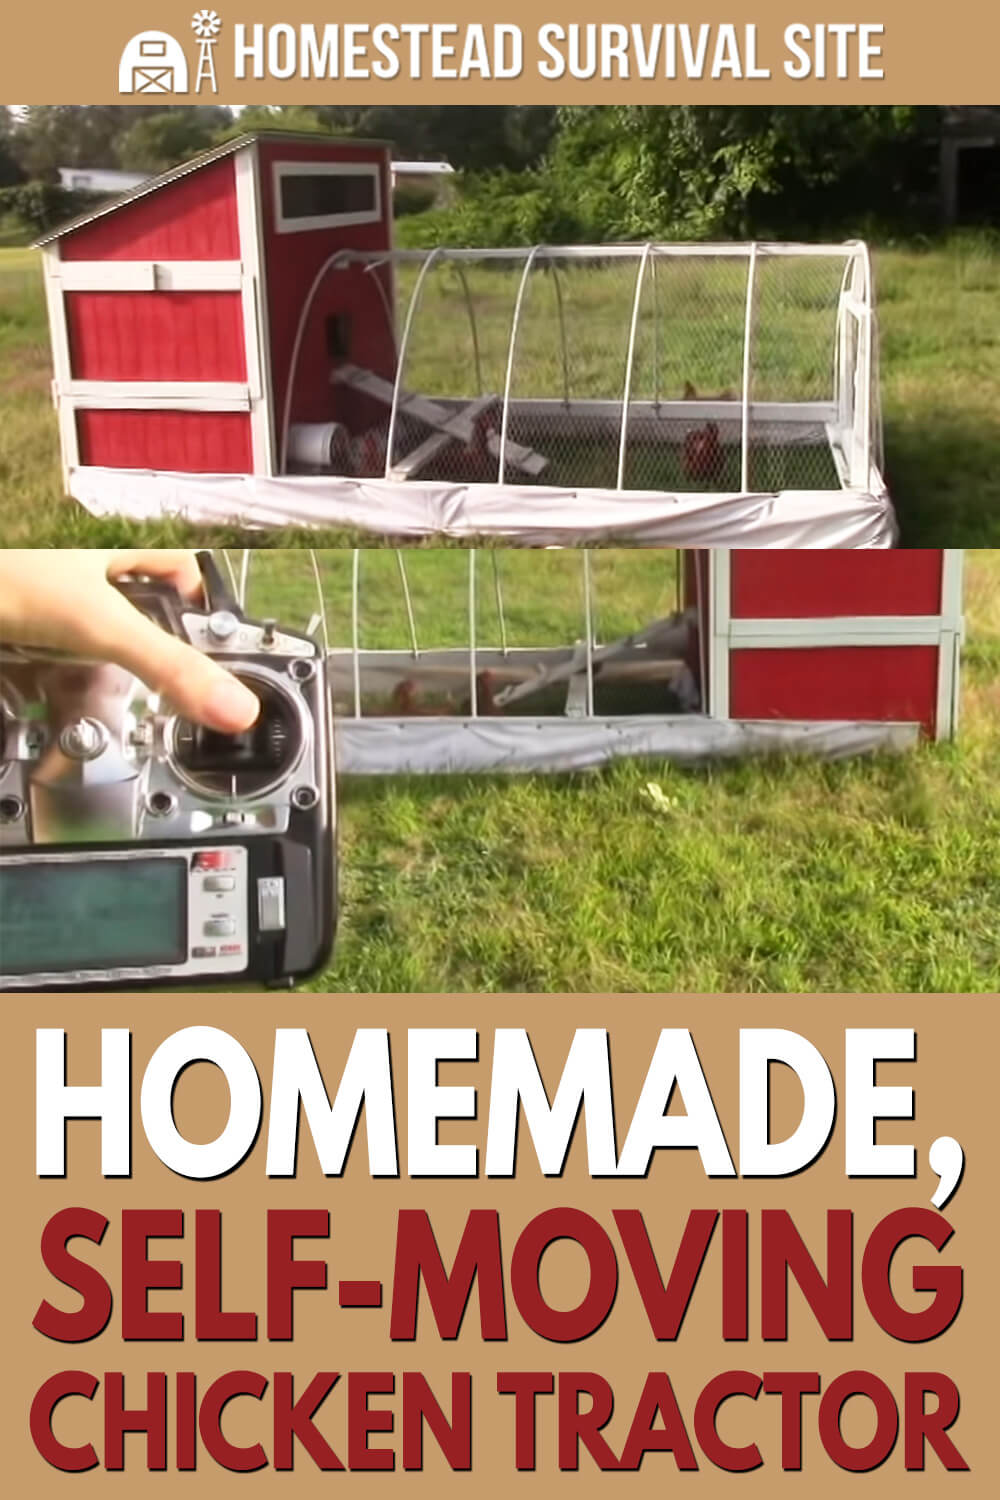 Homemade, Self-Moving Chicken Tractor